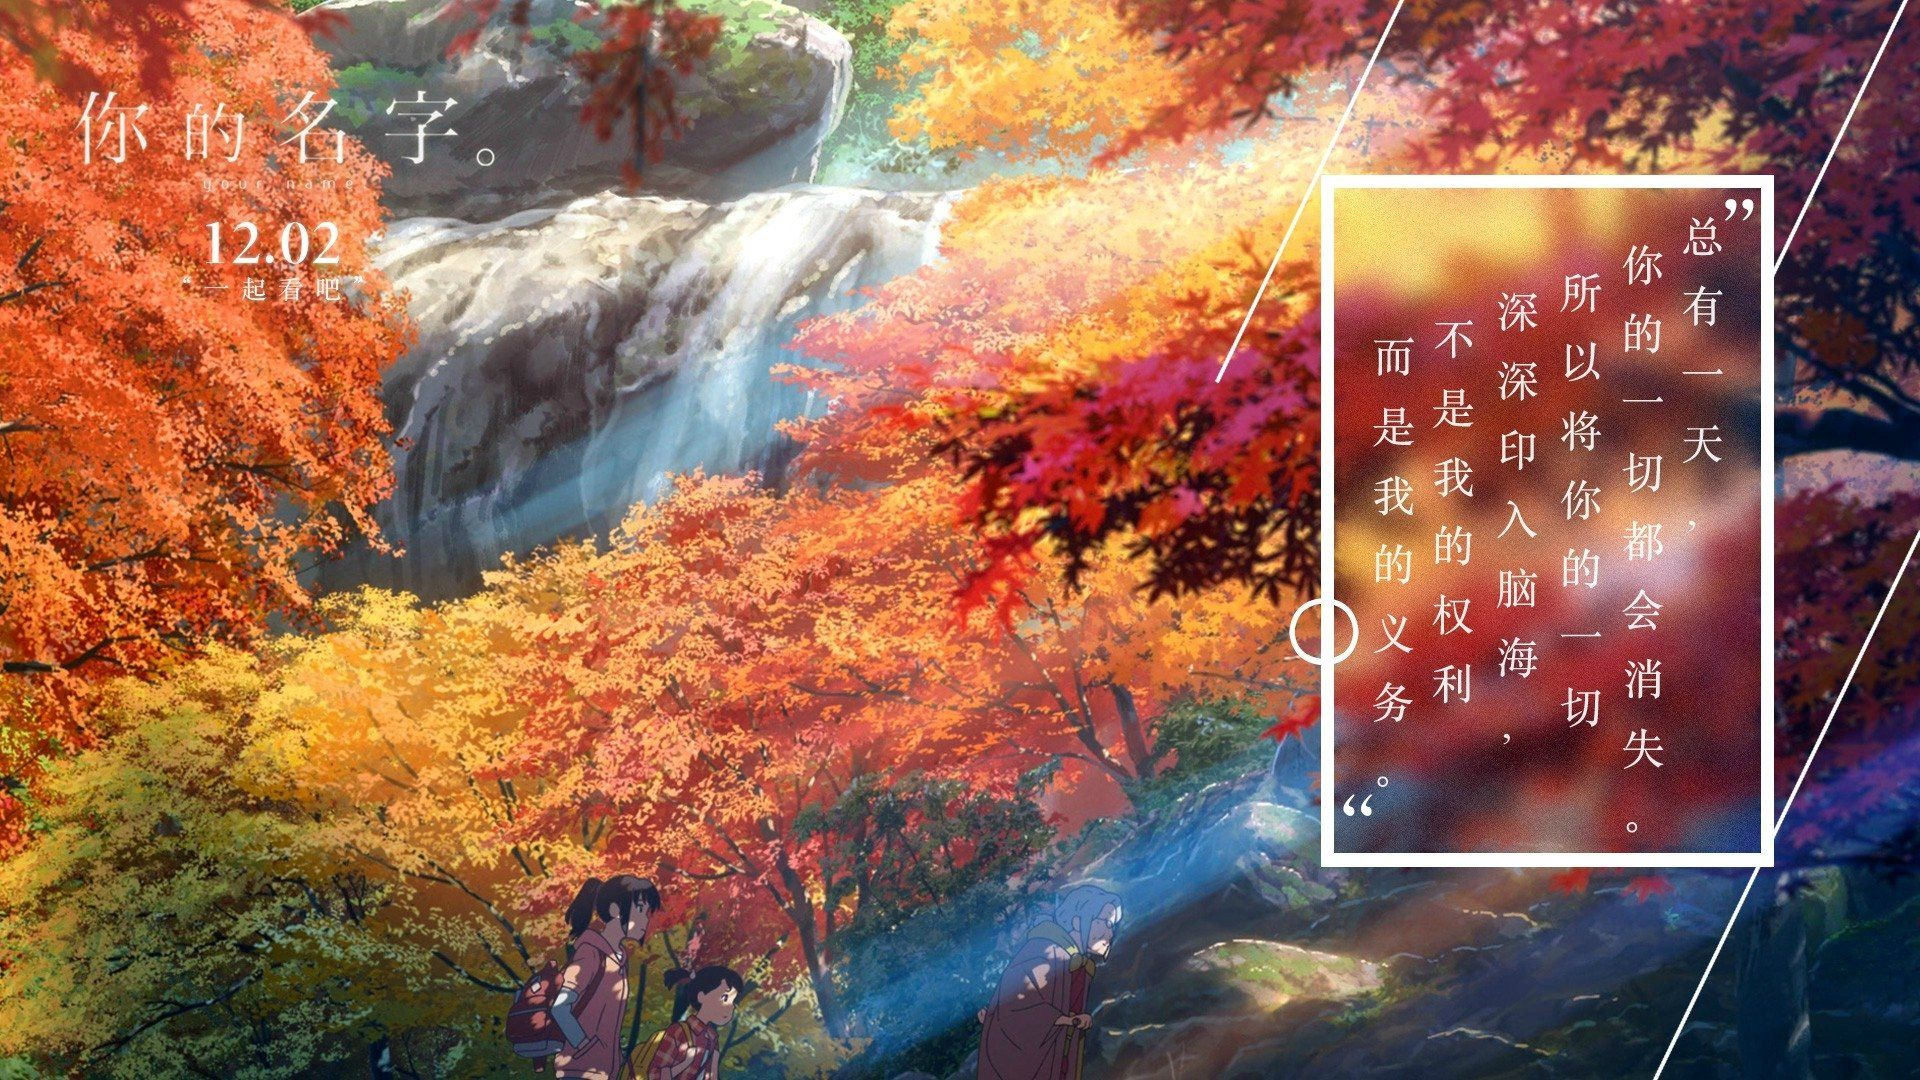 Related image Your name wallpaper, Name wallpaper